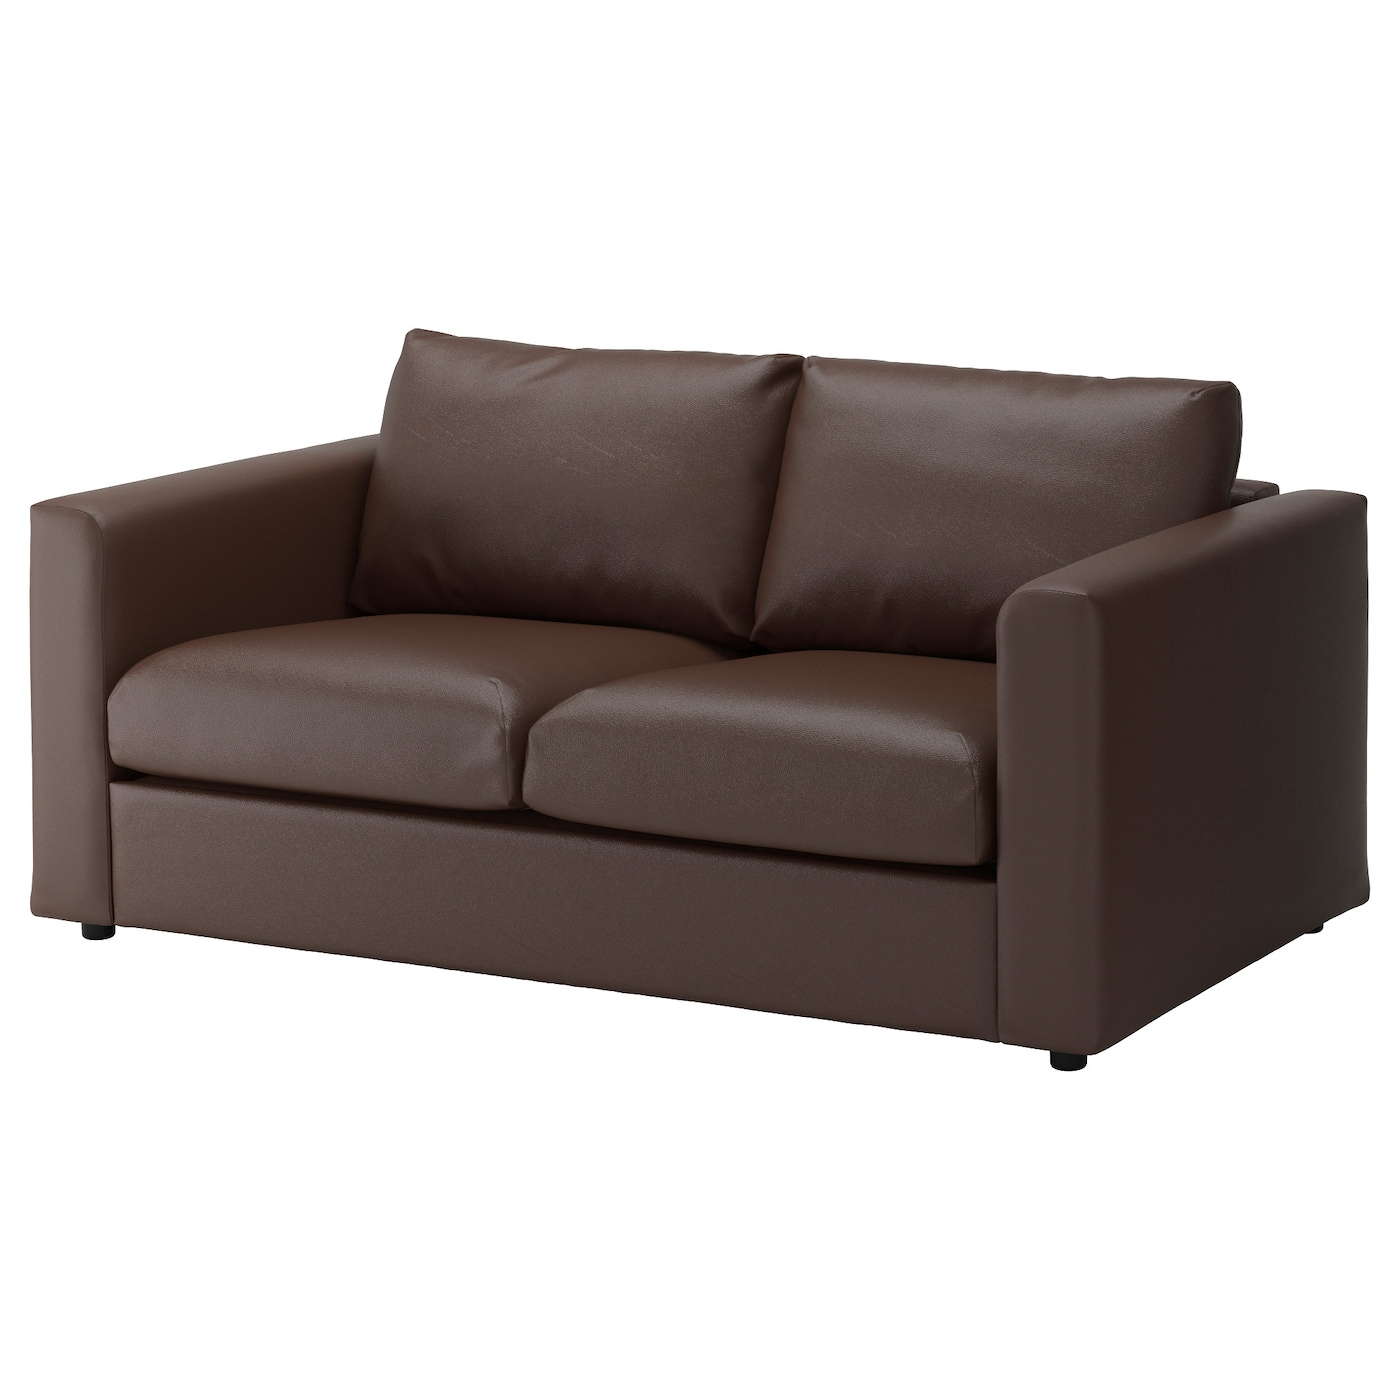 vimle 2 seat sofa farsta dark brown ikea. Black Bedroom Furniture Sets. Home Design Ideas